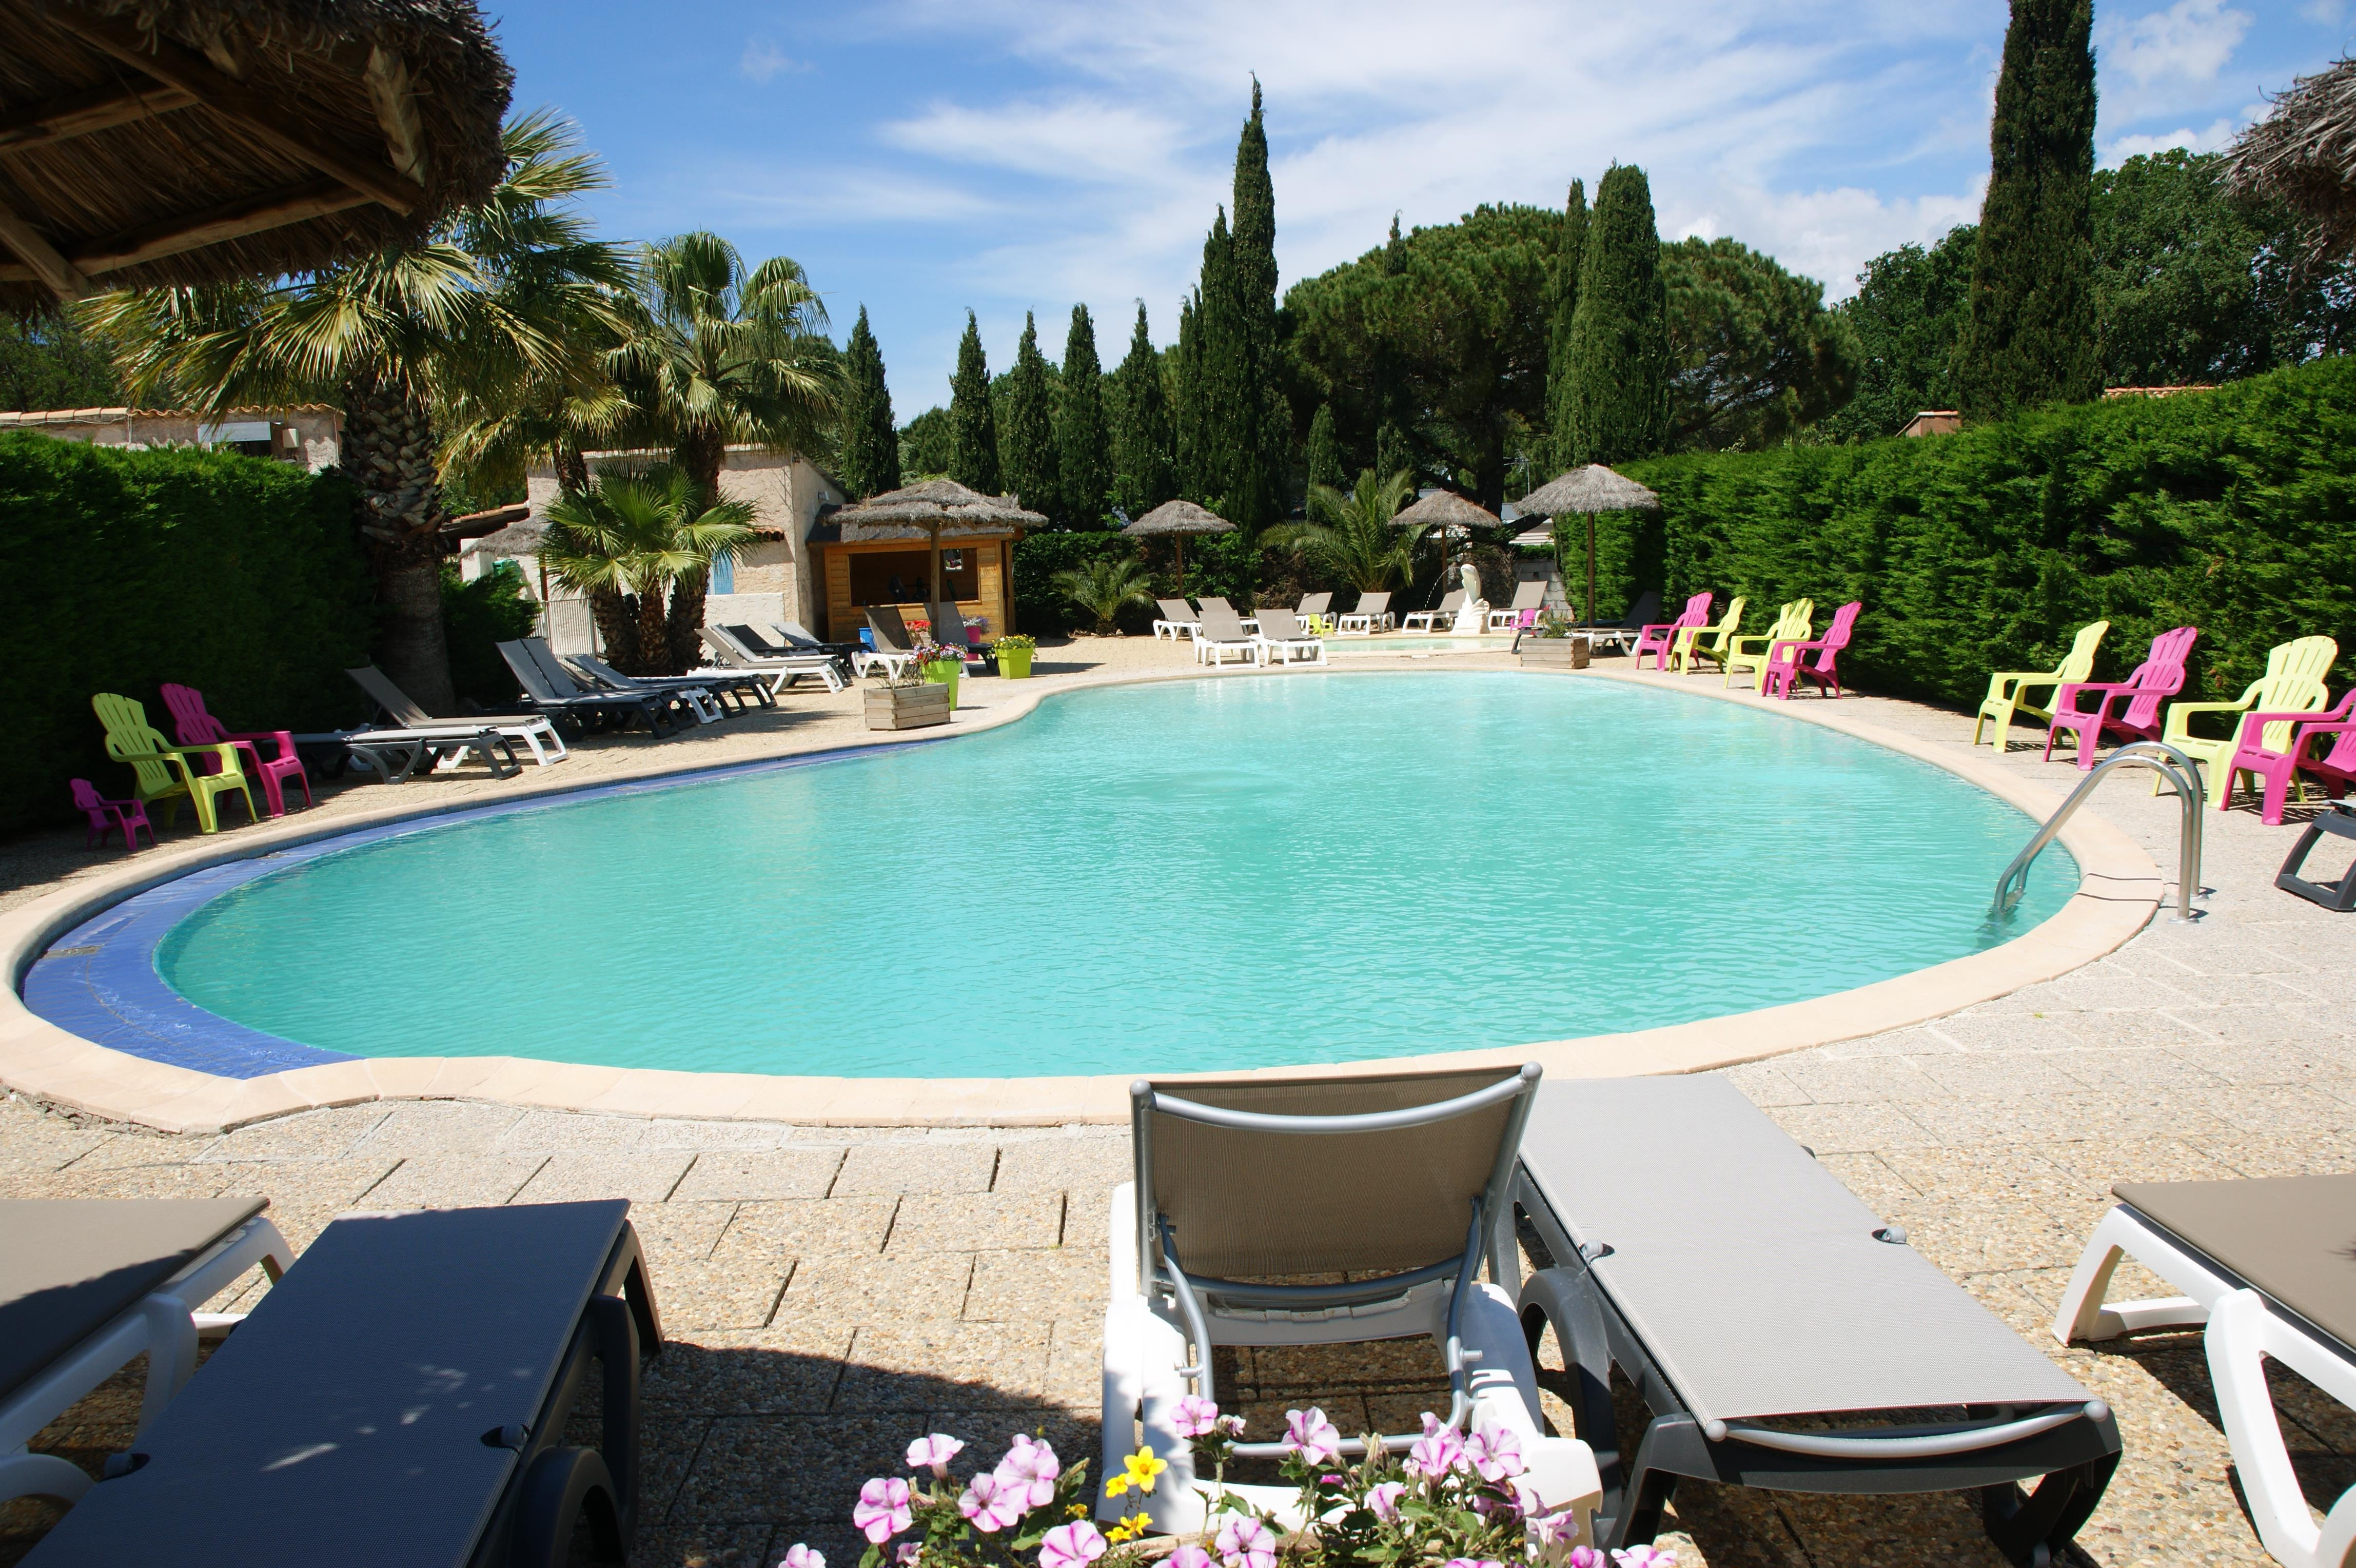 Zwemplezier Camping Orly d'Azur - SIX FOURS LES PLAGES